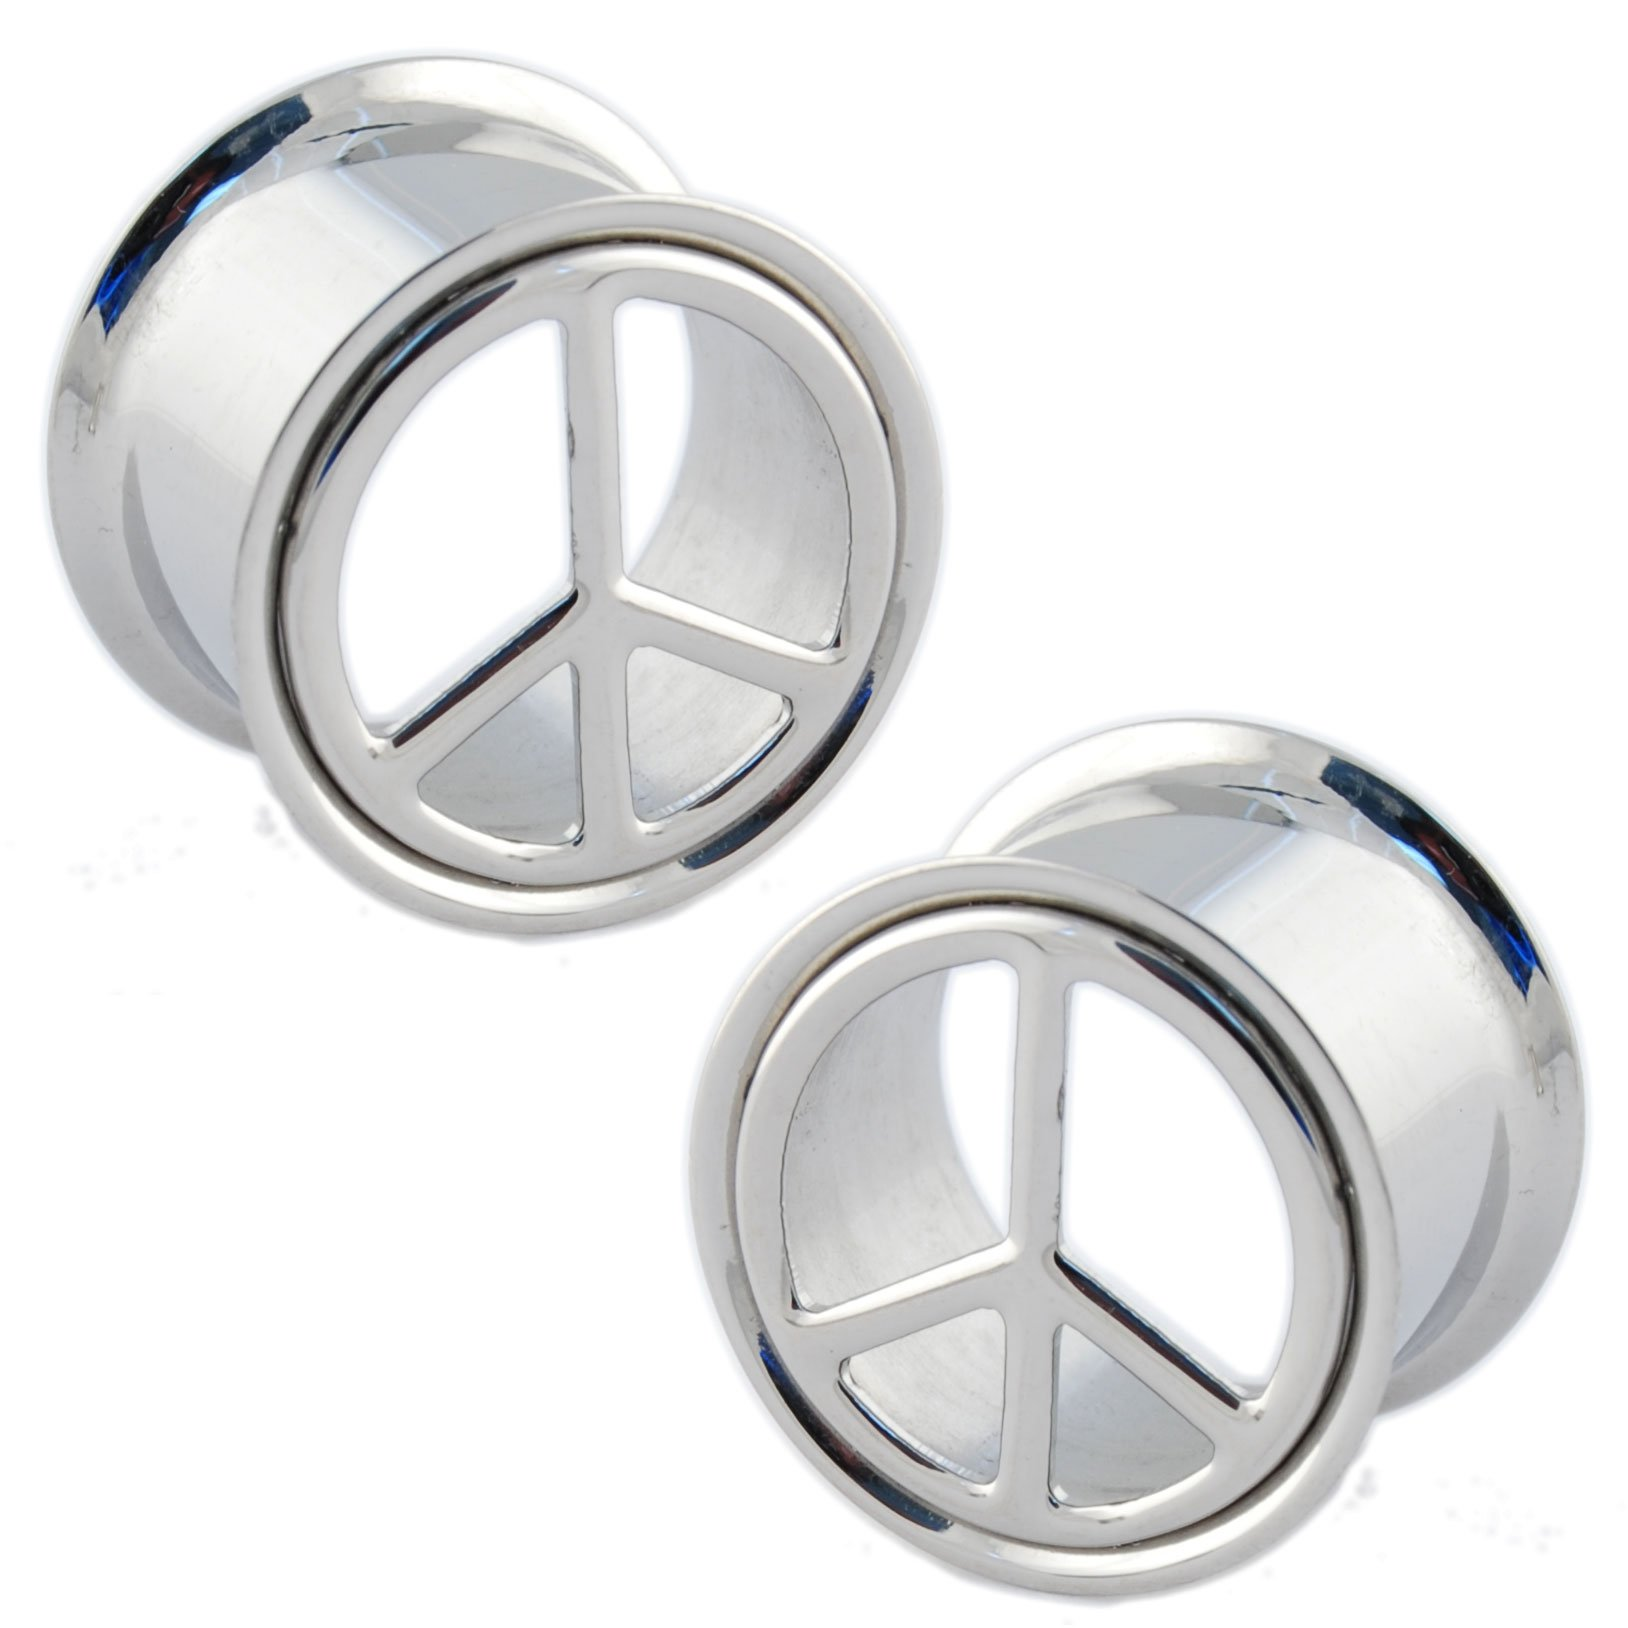 Pair of Stainless Steel Double Flared Peace Sign Eyelets: 0g